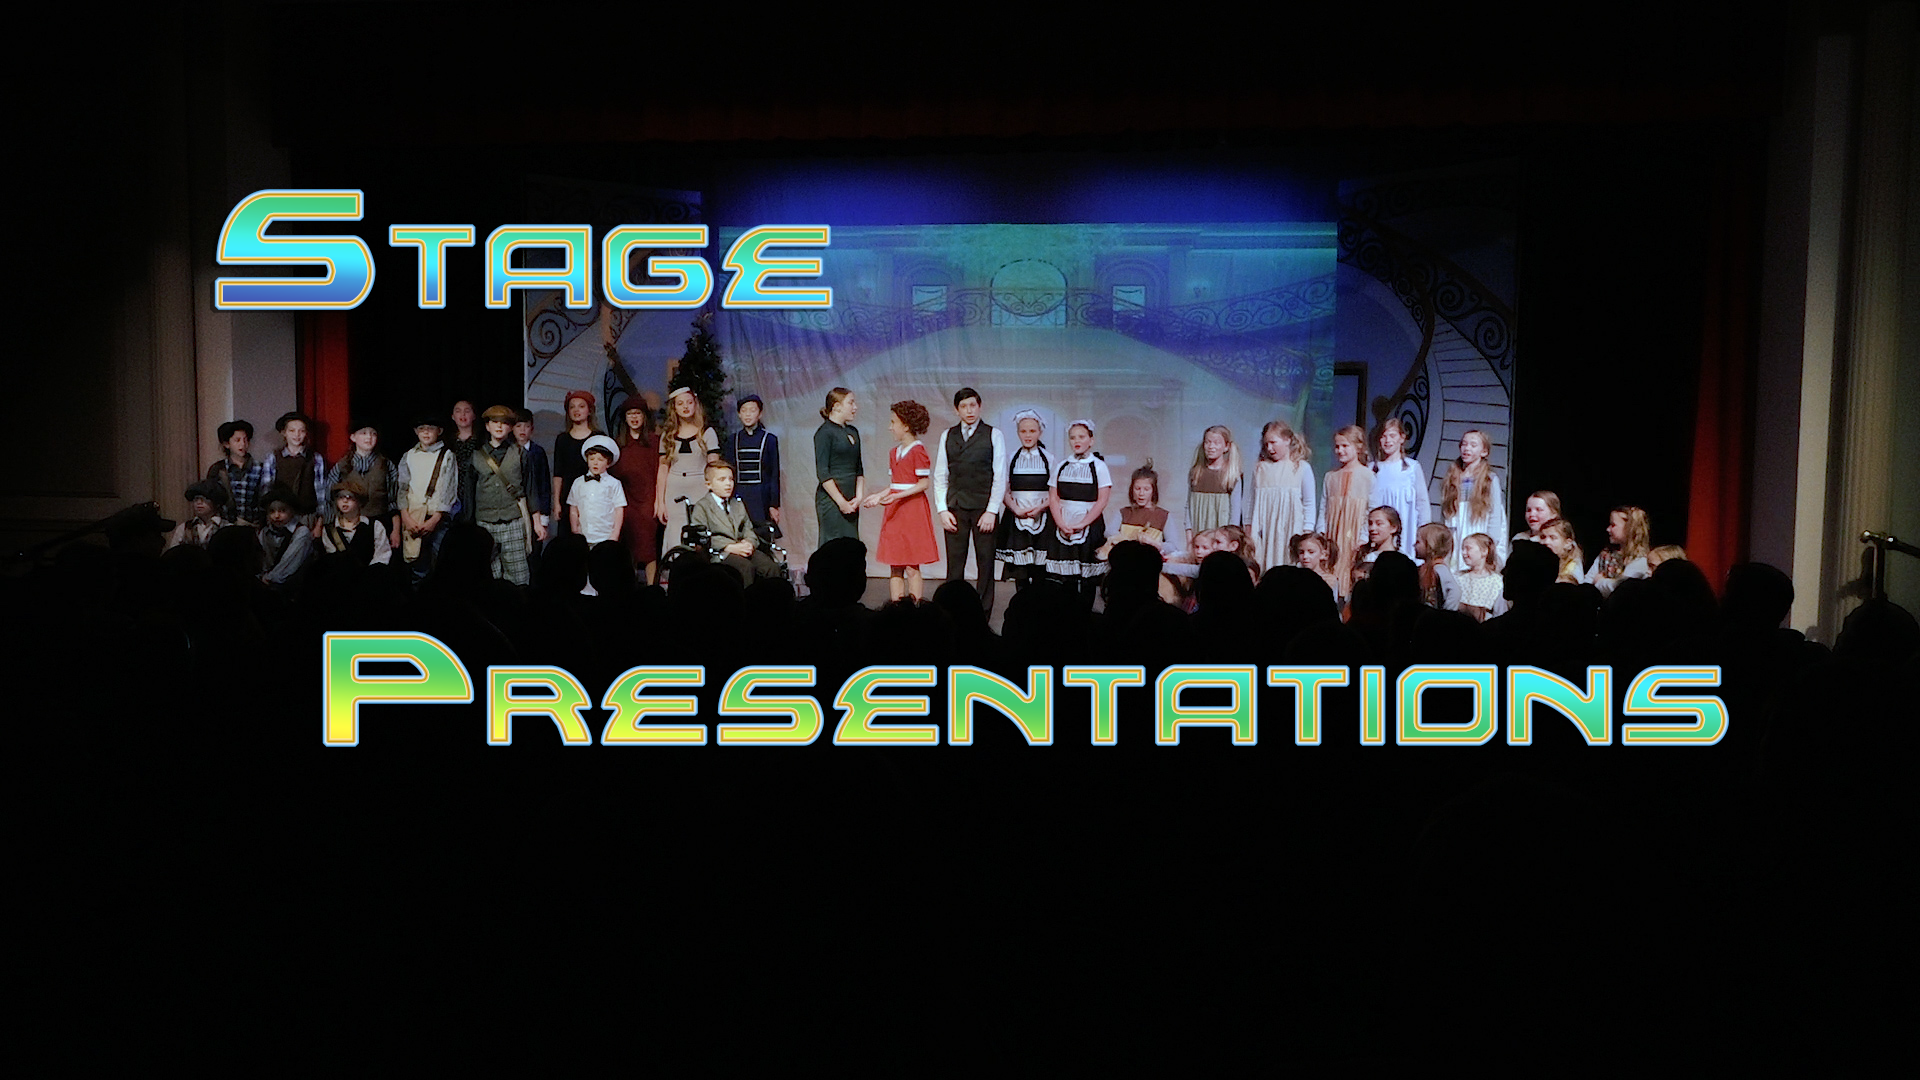 stage presentations